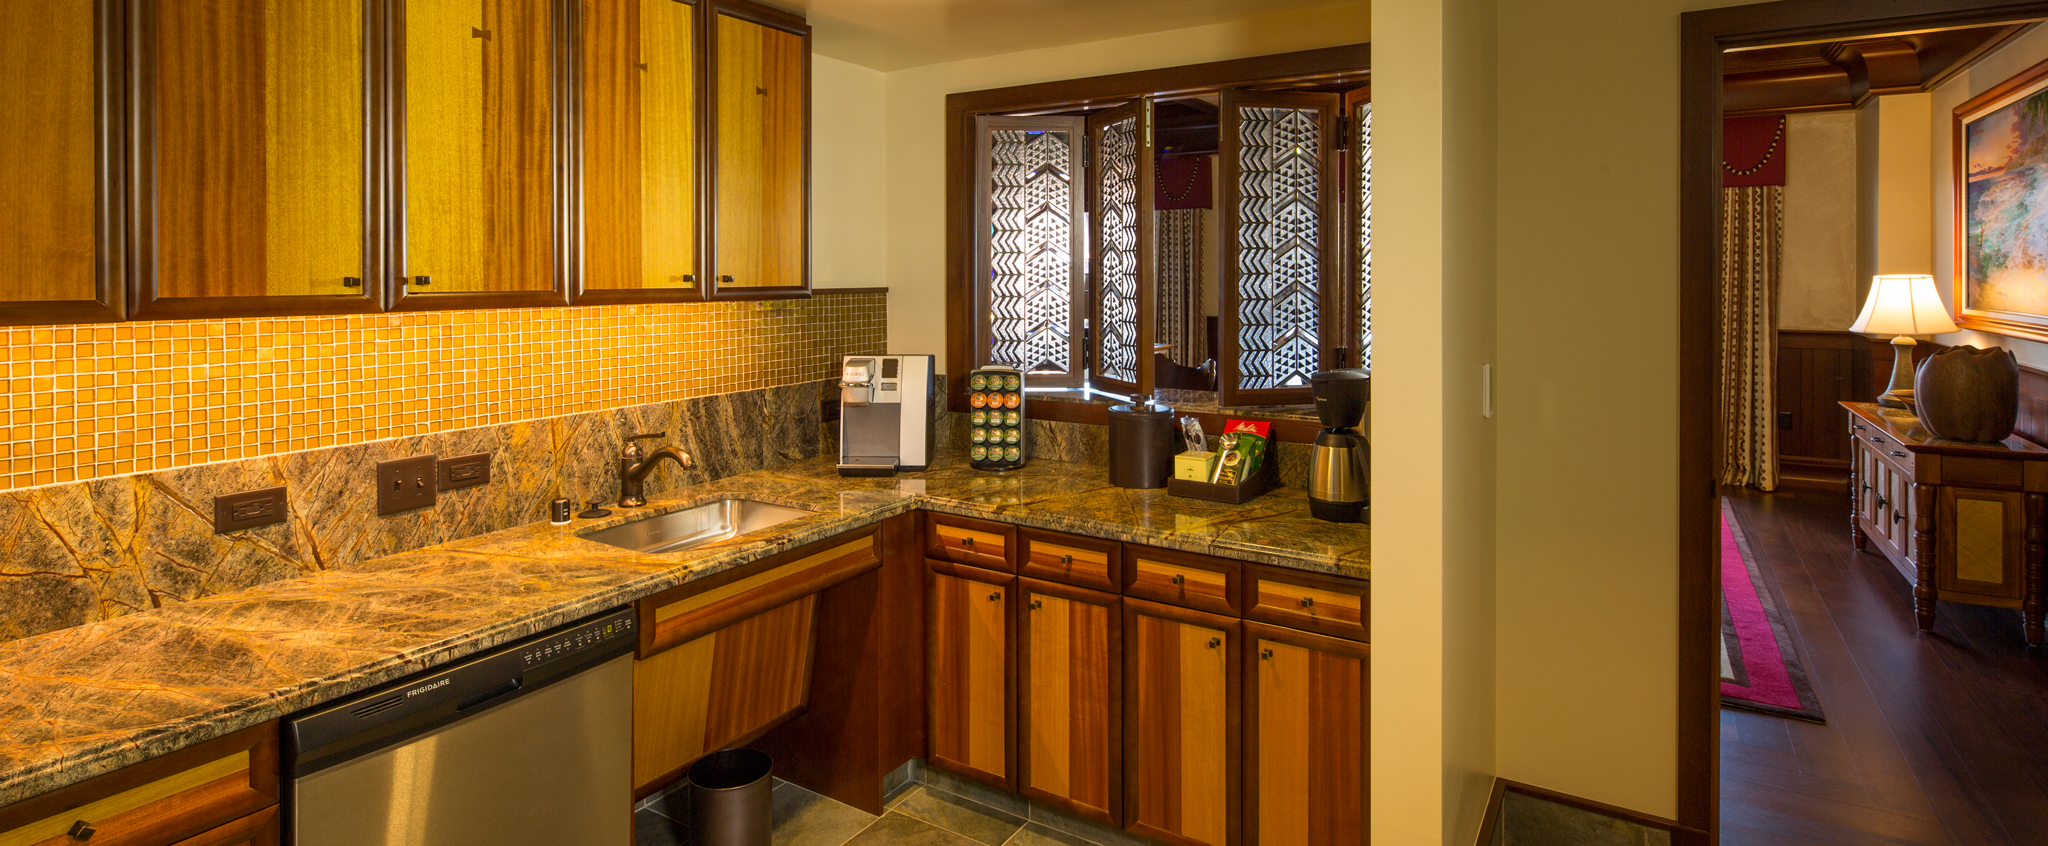 A full kitchen in the 2-Bedroom Suite includes cabinets, granite counters and stainless steel appliances